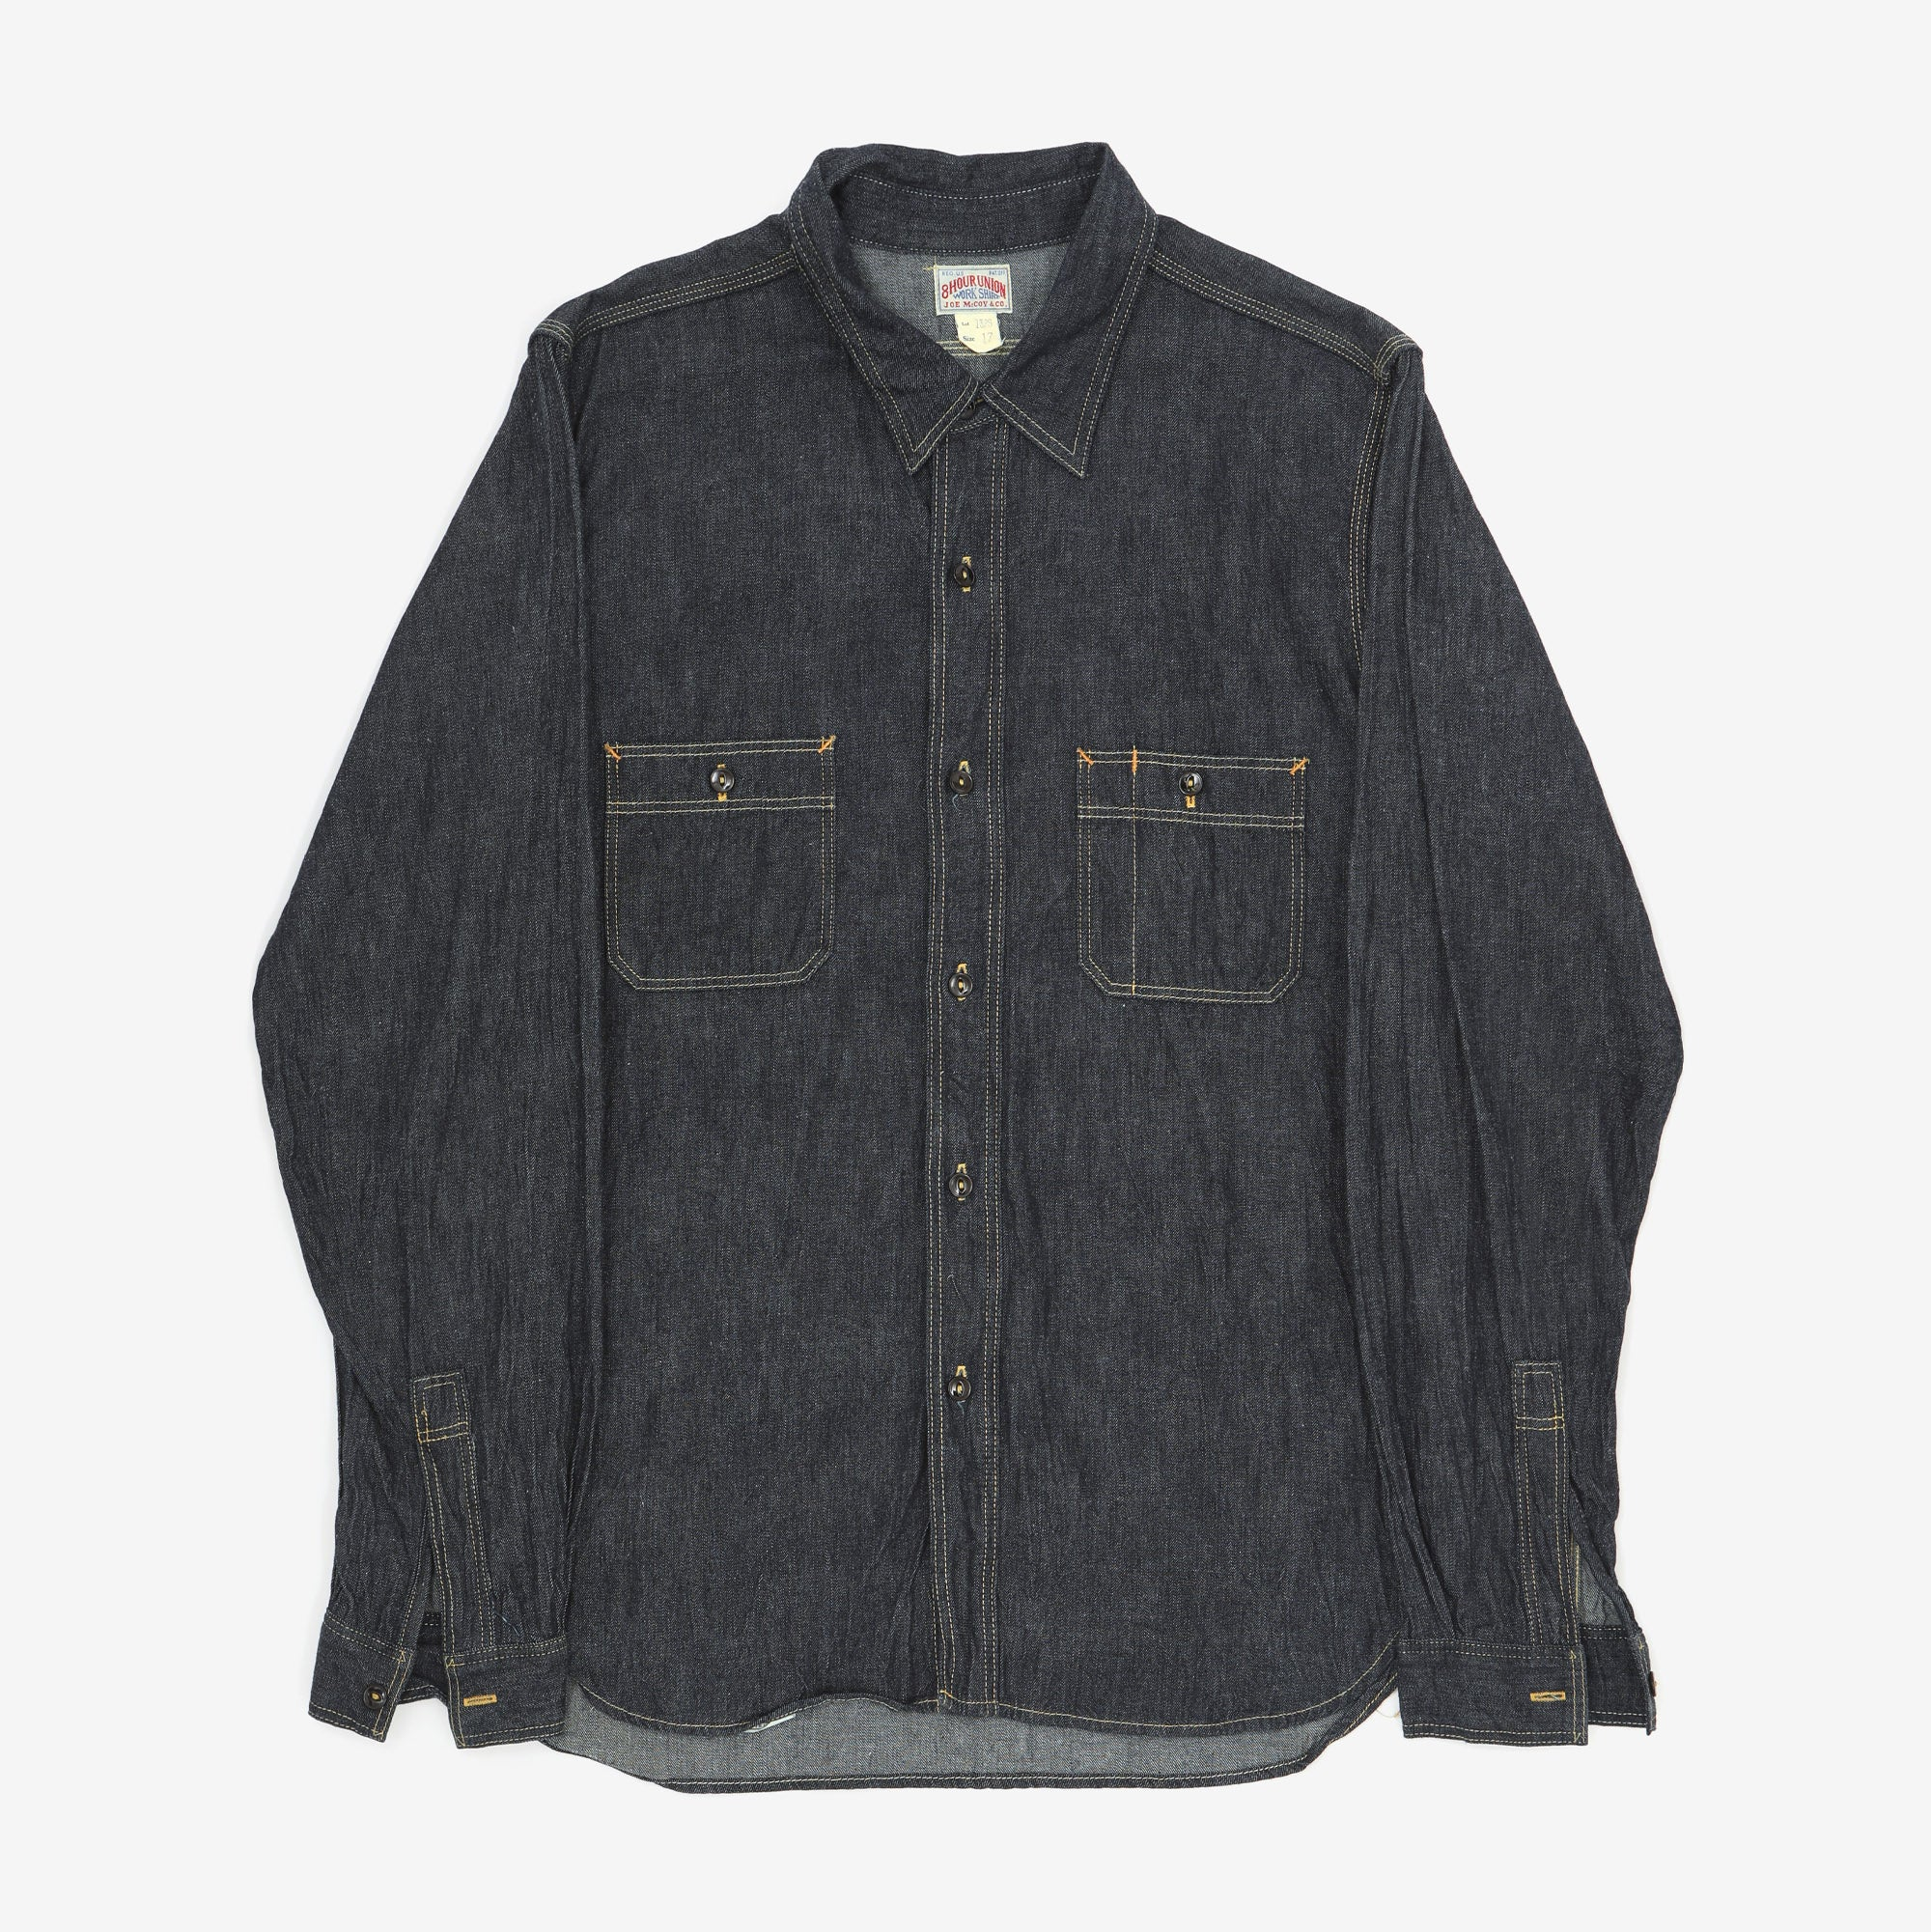 8HU Denim Serviceman Shirt